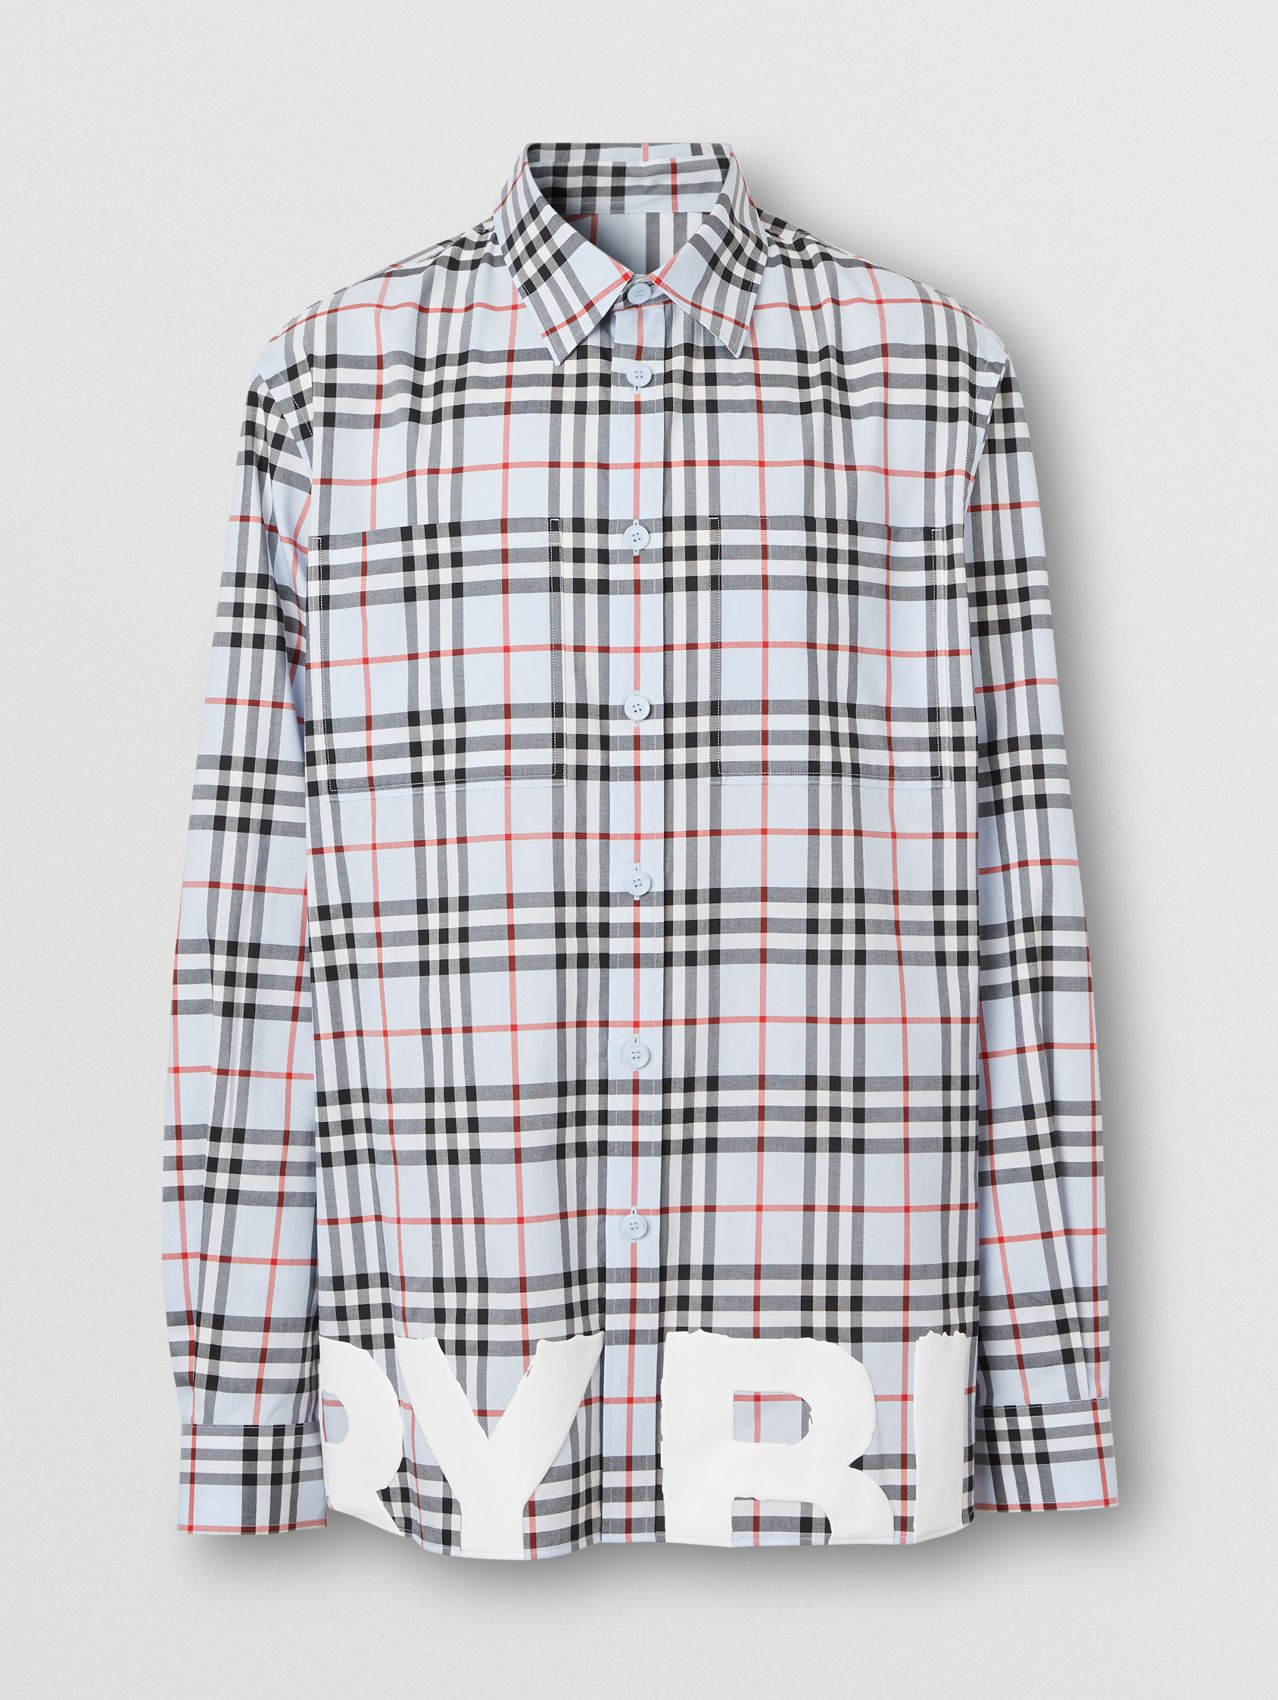 Logo Print Vintage Check Cotton Oversized Shirt – Online Exclusive in Pale Blue